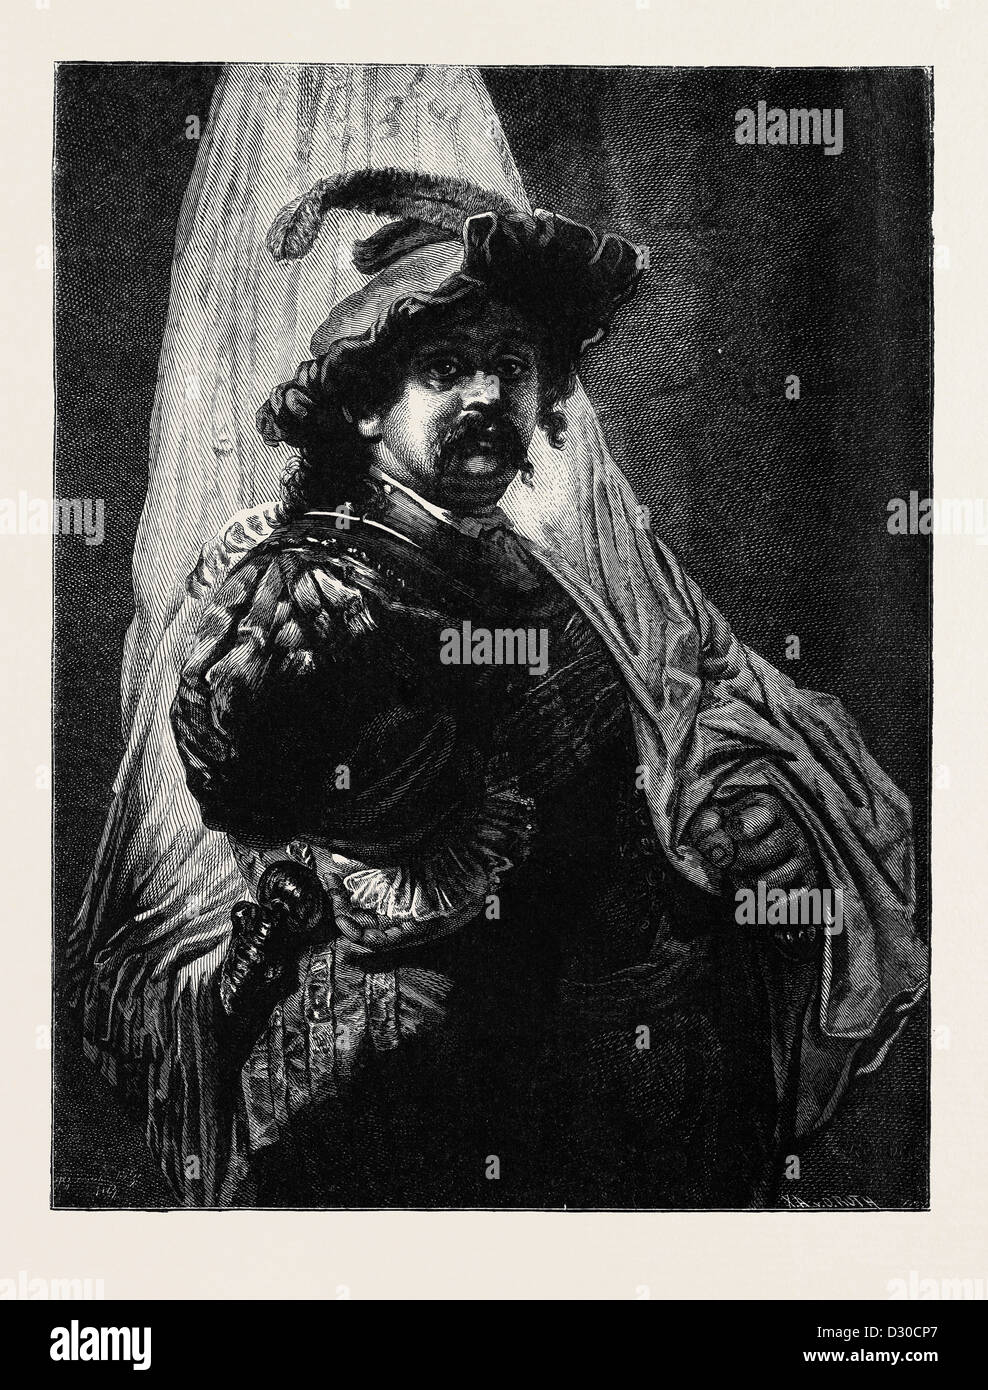 THE STANDARD BEARER, AFTER A PAINTING BY REMBRANDT - Stock Image